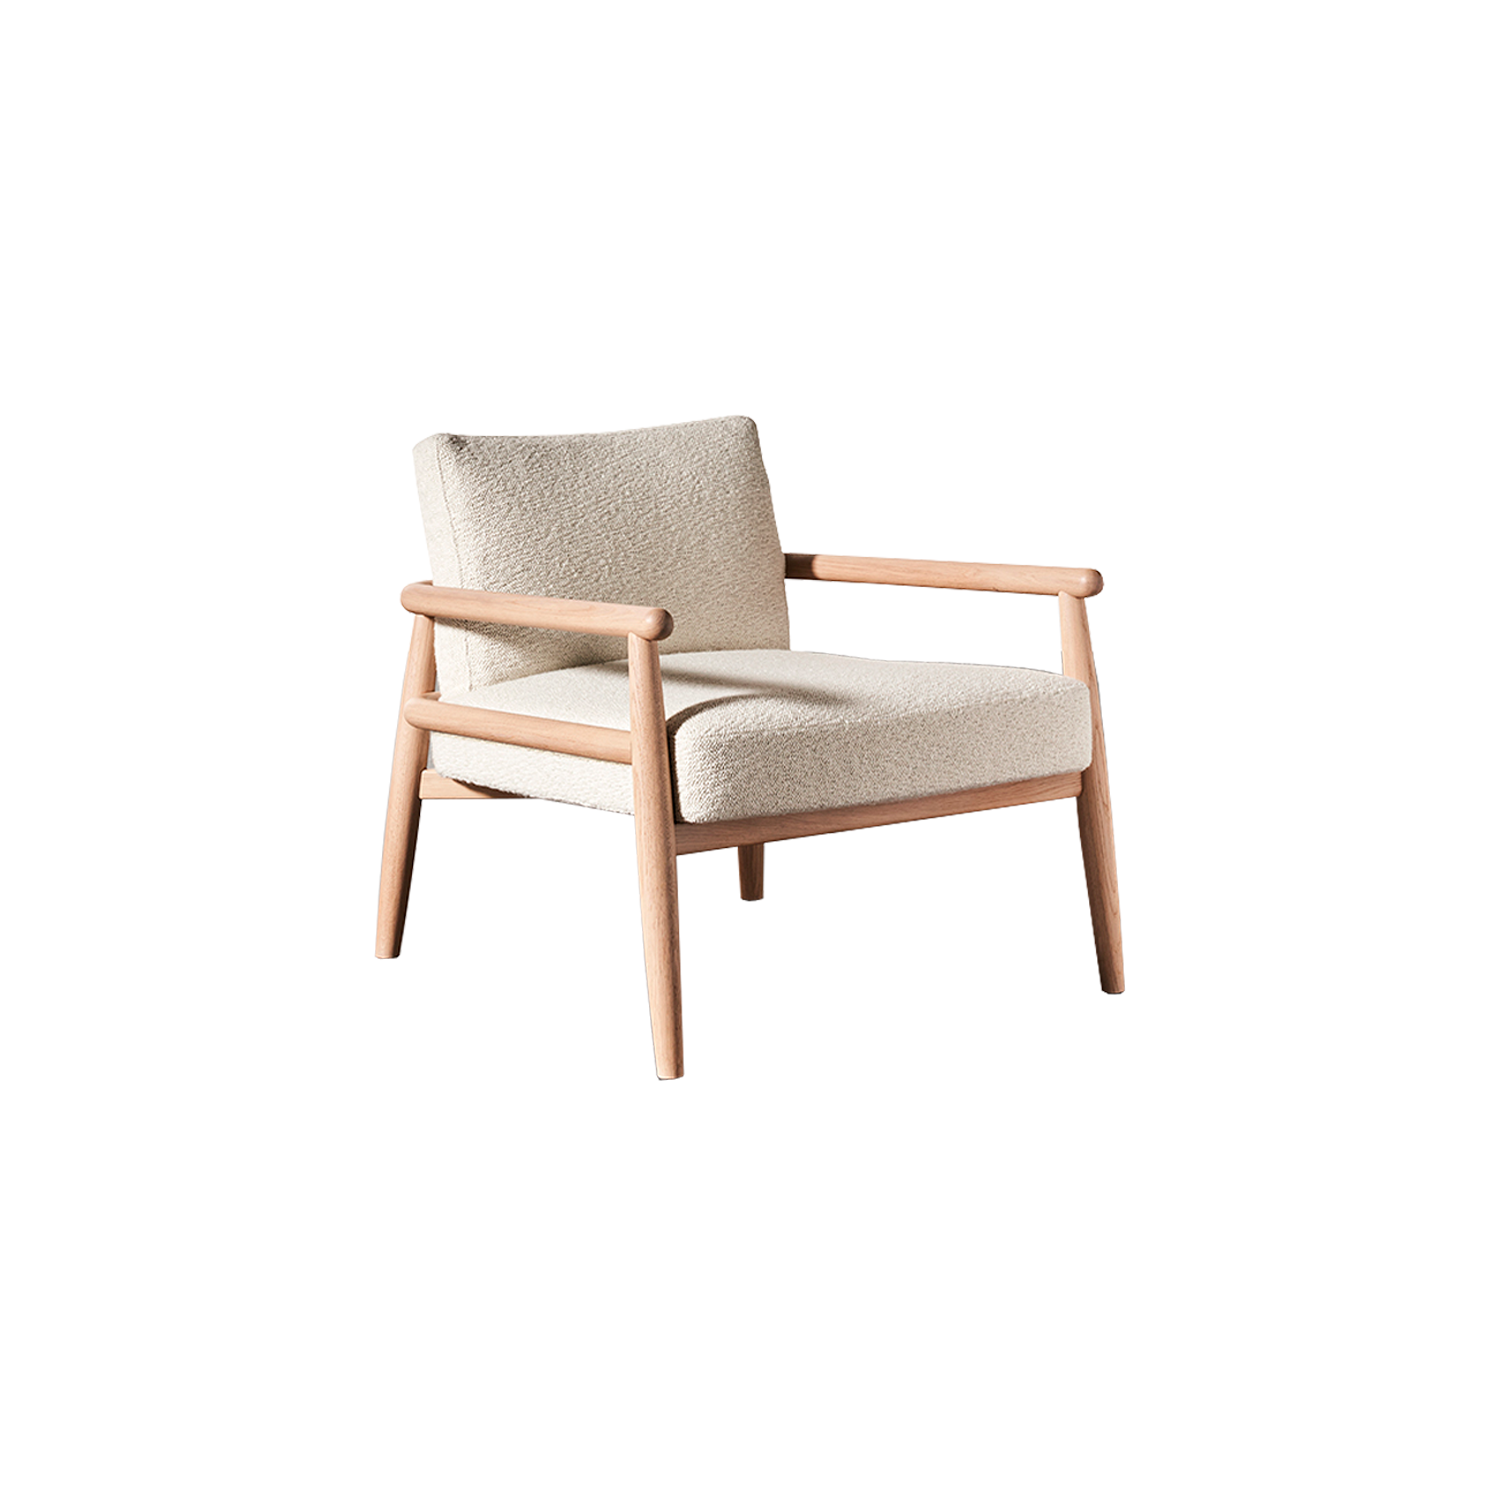 """Teresa Lounge Armchair - Two souls enclosed in the same body: Teresa is an armchair marked by essential lines that take shape and structure thanks to the warmth and solidity of oak wood, skillfully crafted. Both comfort and aesthetics differ in the available versions, the """"soft"""" one, more welcoming, with padded back and seat covered with the textiles and leathers in collection, and the """"kuoio"""" one. The latter takes on a more gritty and decided look thanks to a saddle-leather body that defines back, armrests and seat: the particular saddle leather shape bound up to the oak frame draws a suspended seat that emphasizes its rigor. A storage bag is available as an accessory, to be placed left or right, or even on both sides at your choice. This is how this collection recalls different suggestions depending on the finish and color chosen, creating versatile seats able to dress up and interpret every living context.  The chair is available in different colours. Please enquire for more details 